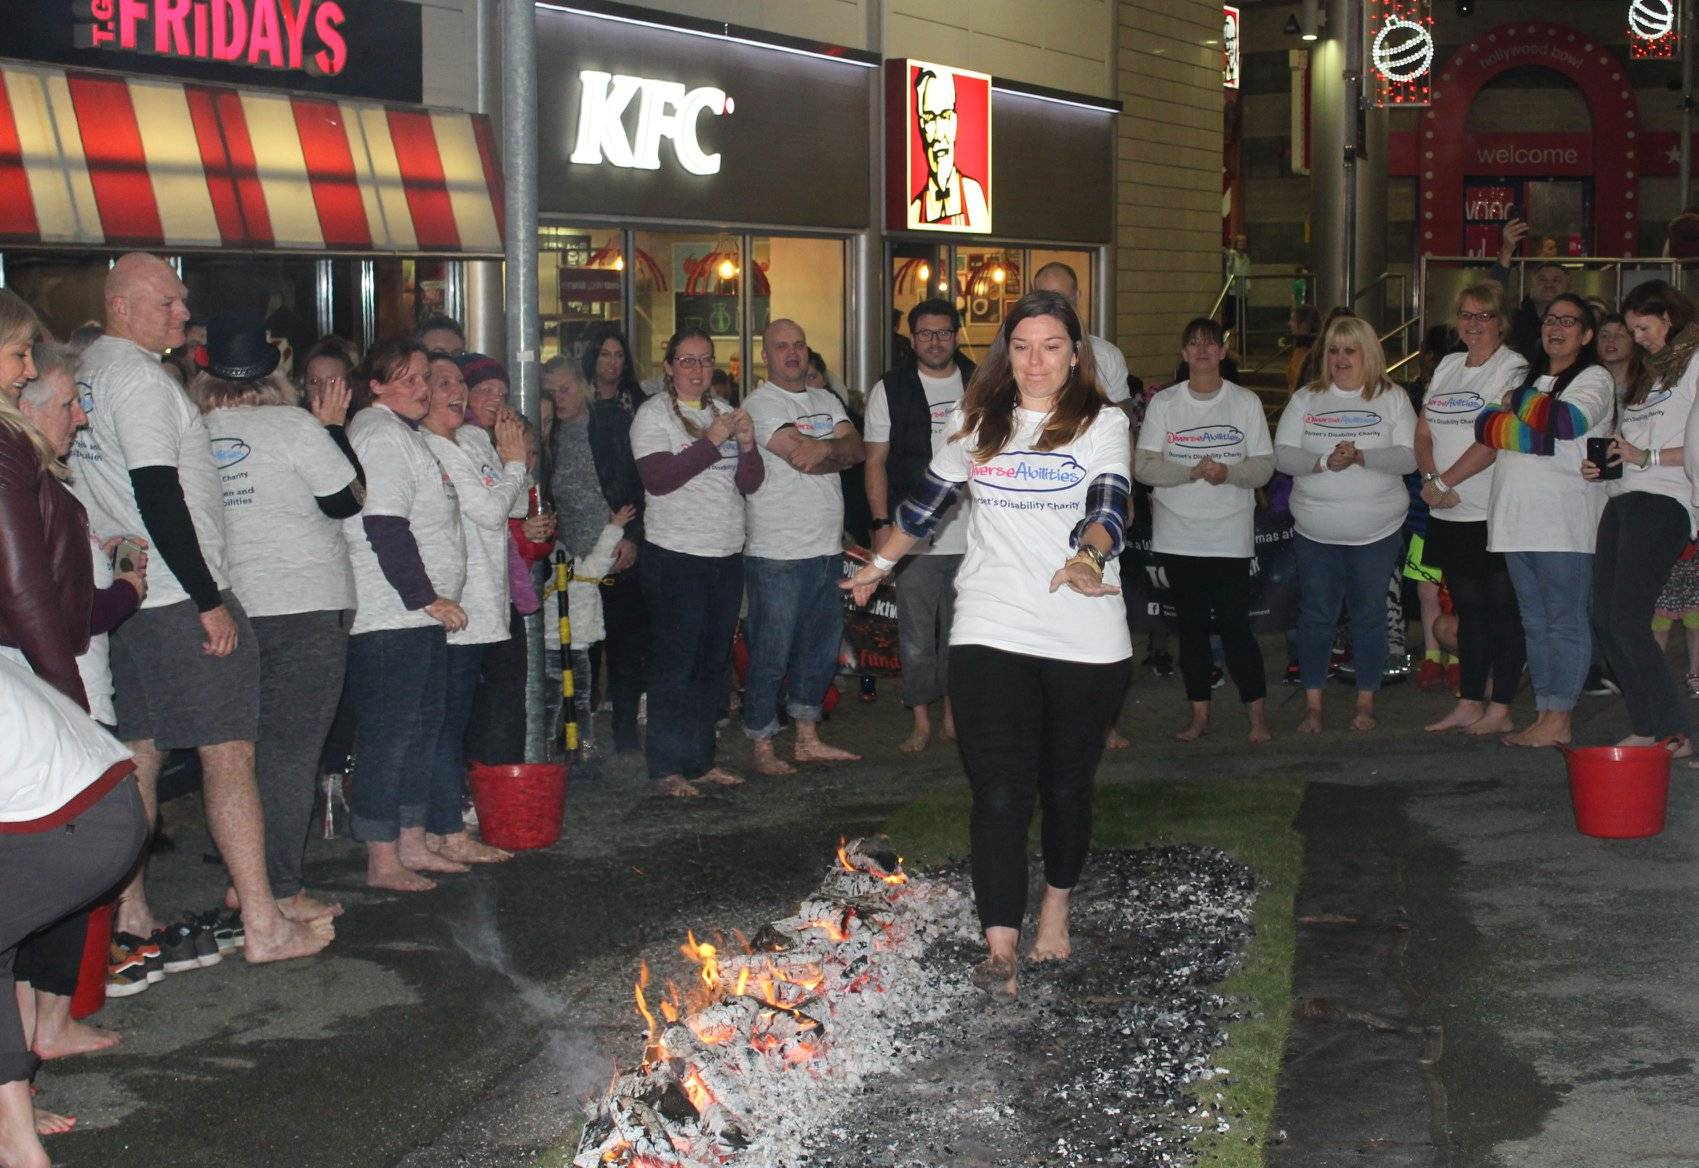 Firewalk #40before40